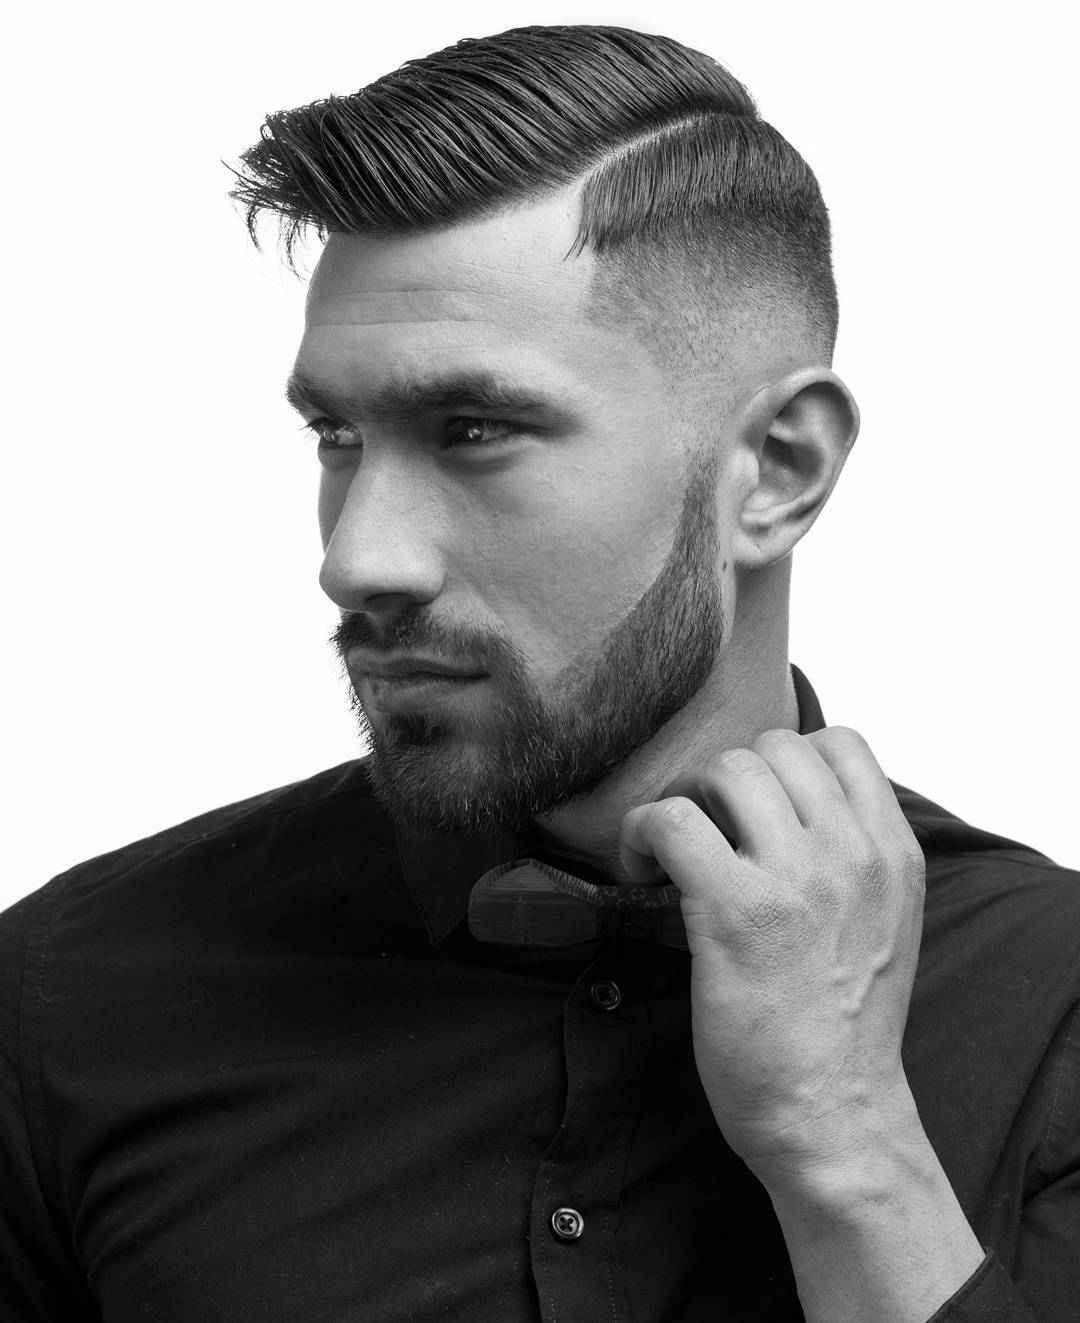 lianos_urban_cutz mid fade haircut with side part